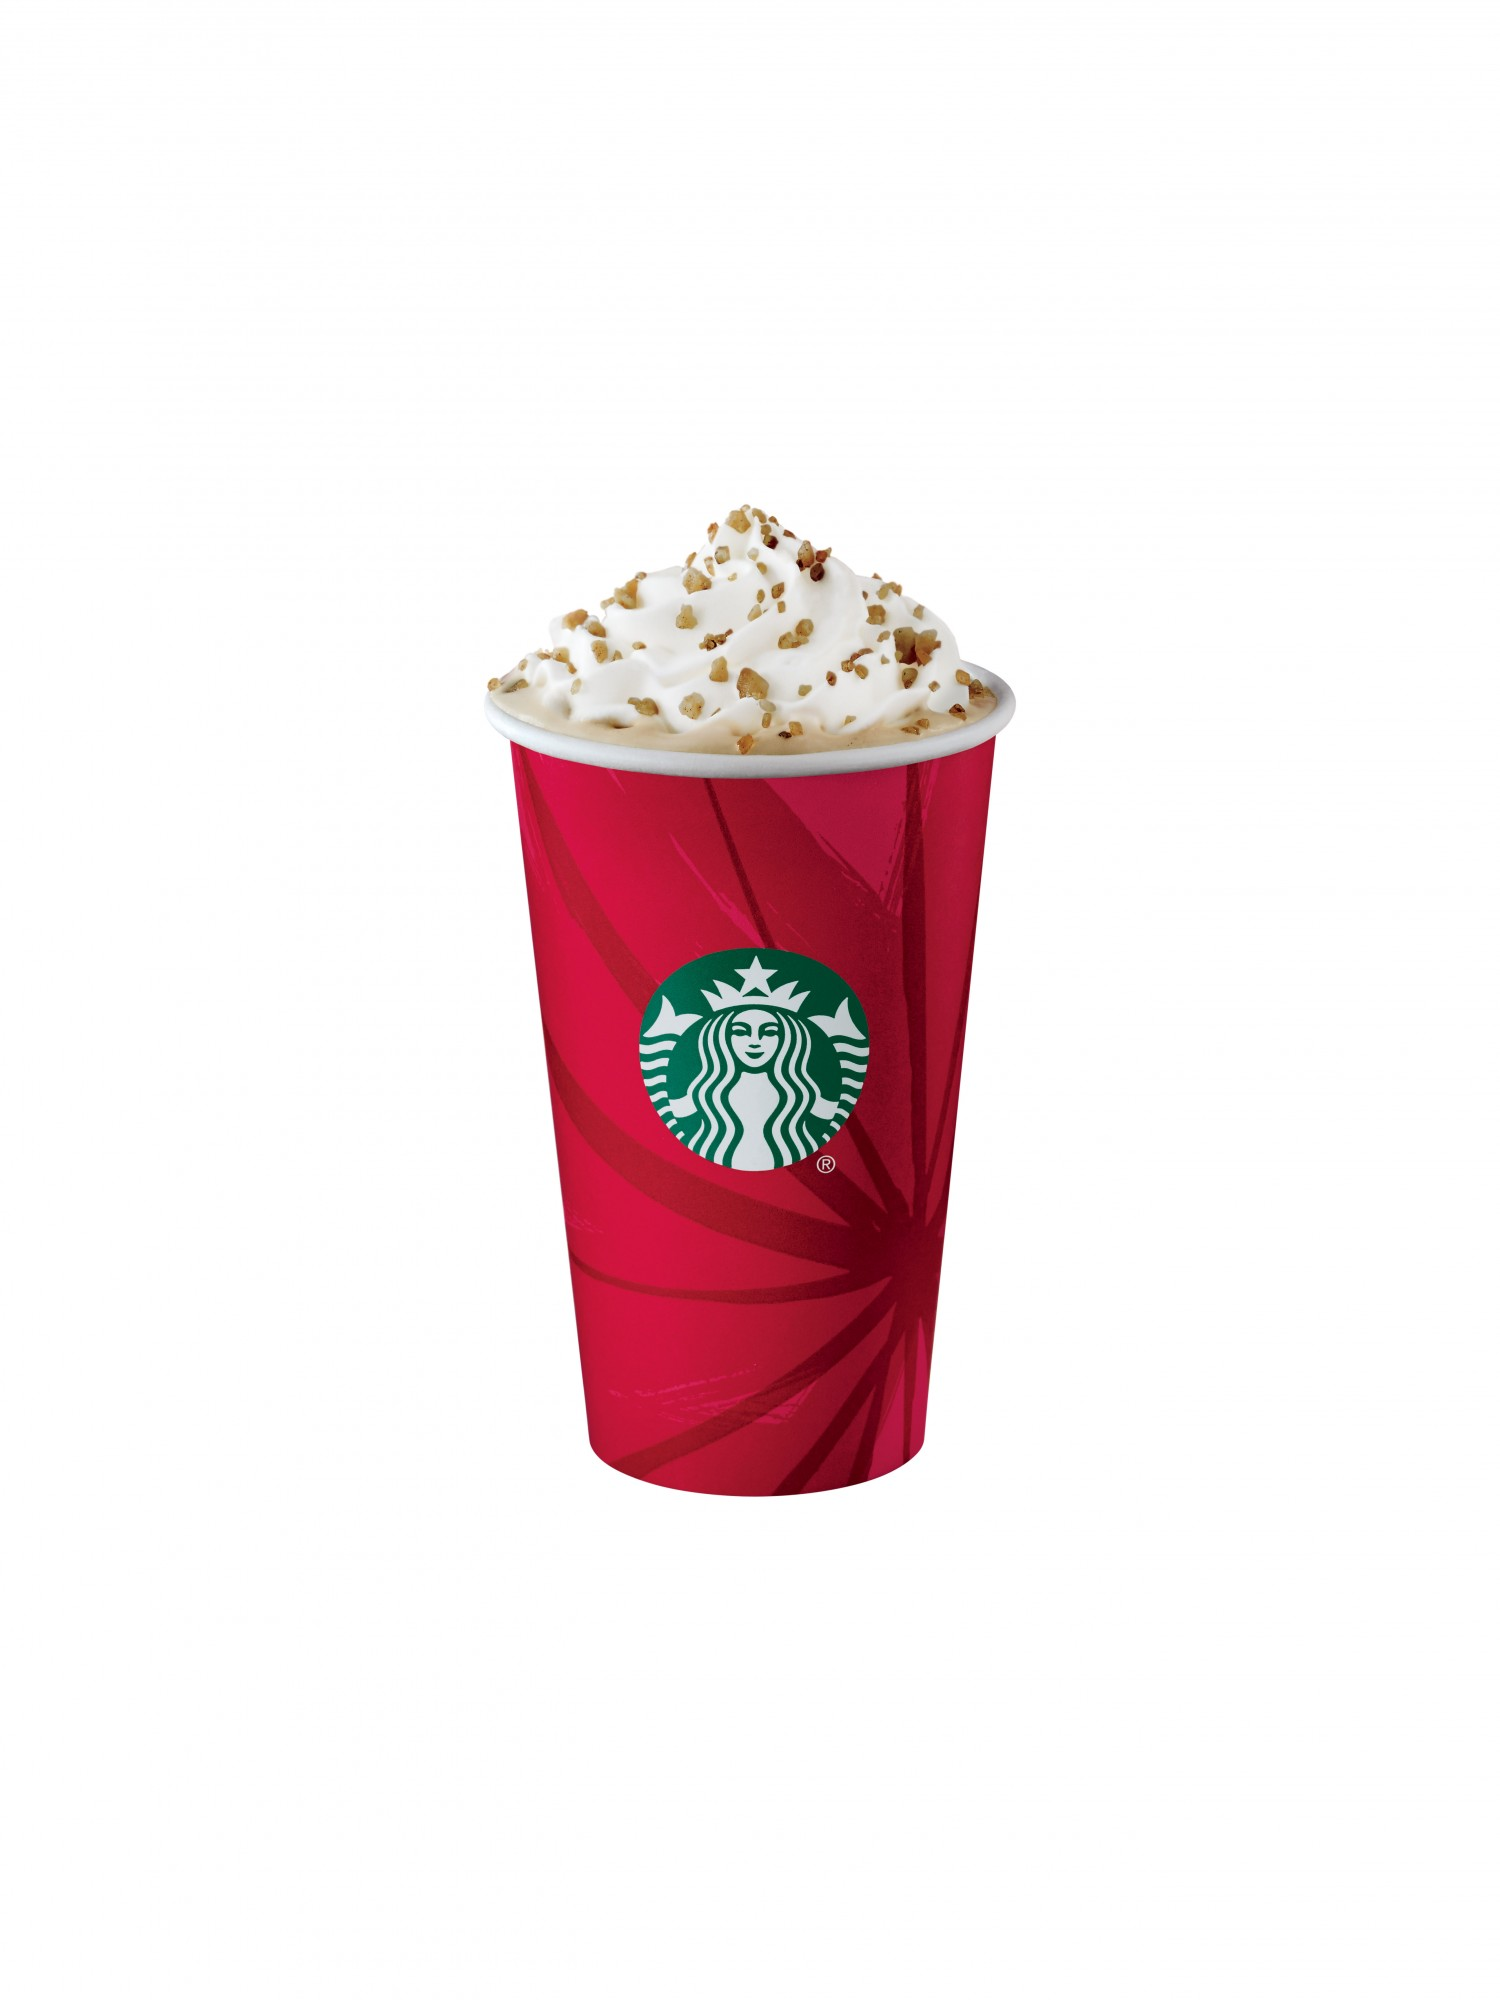 Starbucks Launches The Chestnut Praline Latte Its New